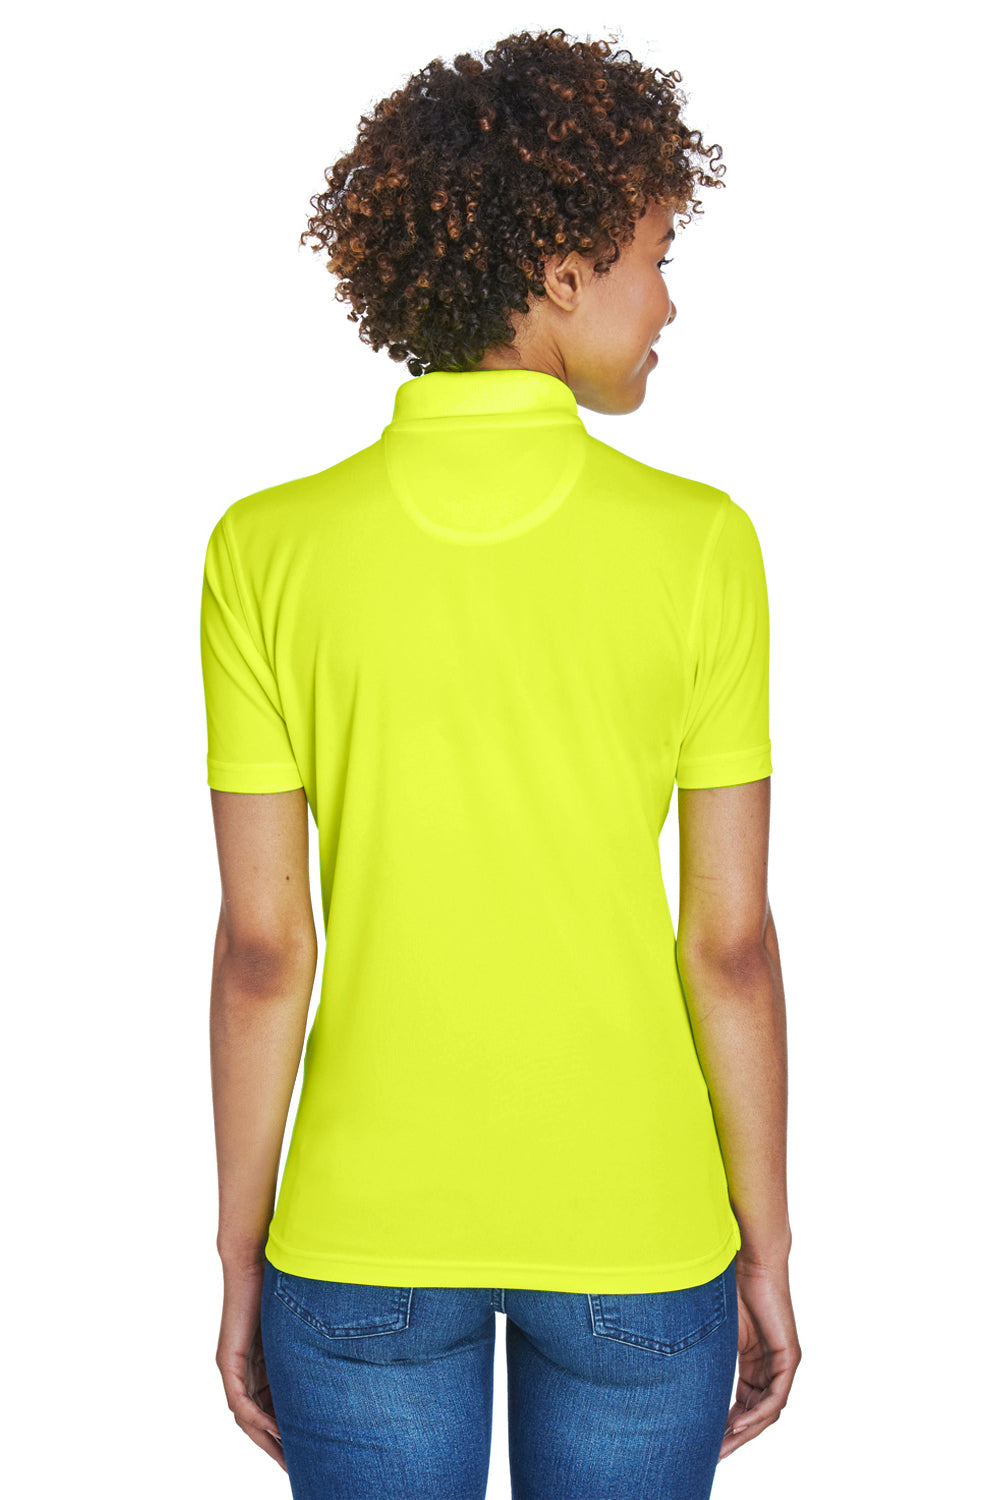 UltraClub 8210L Womens Cool & Dry Moisture Wicking Short Sleeve Polo Shirt Bright Yellow Back